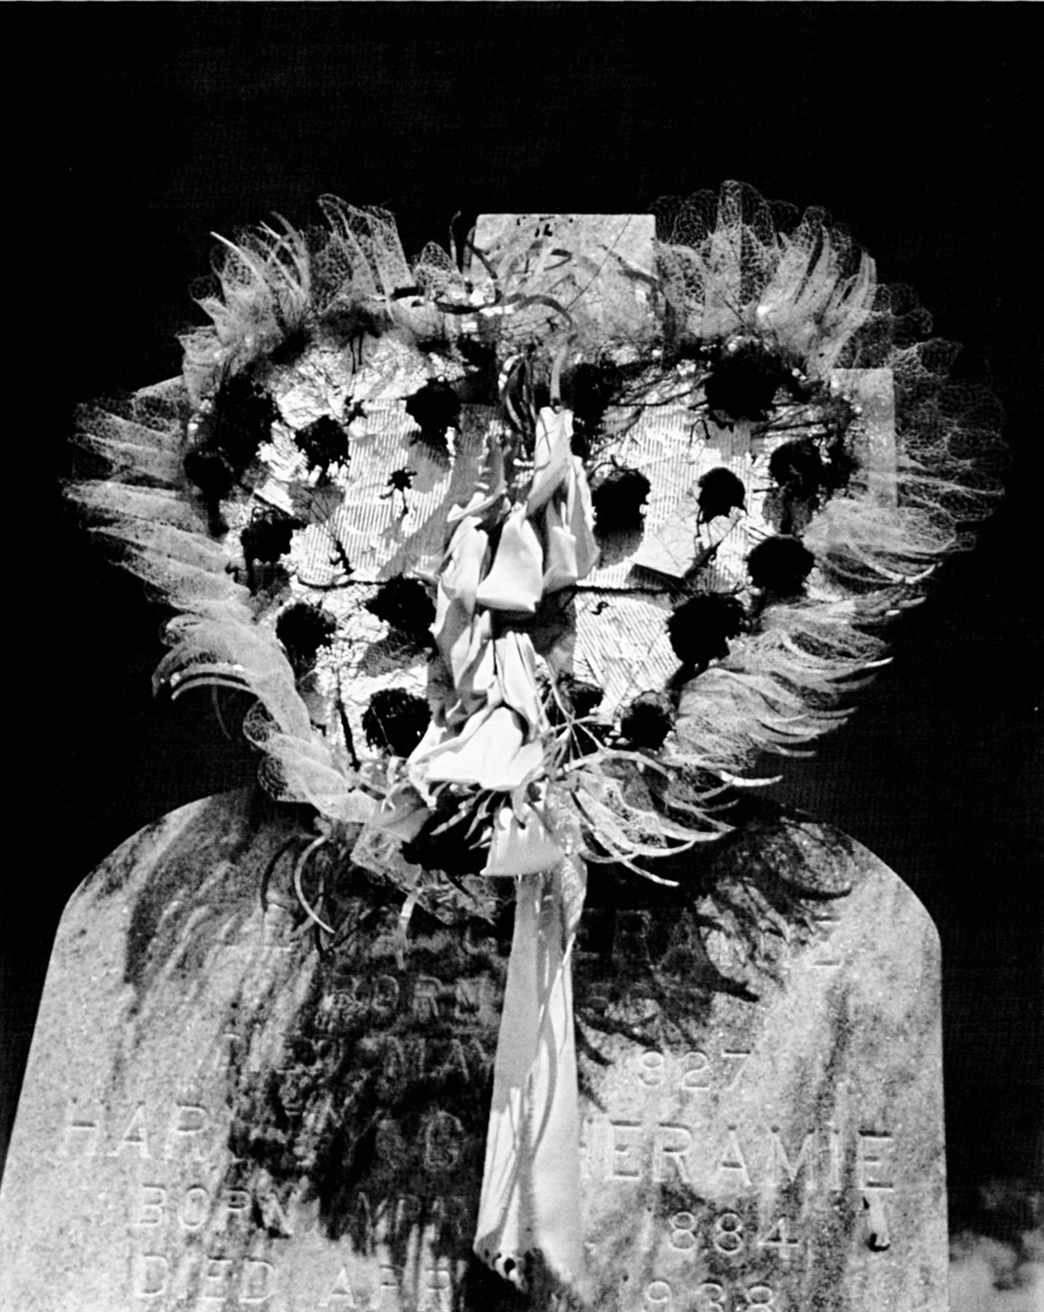 The Insect-Headed Tombstone, 1953